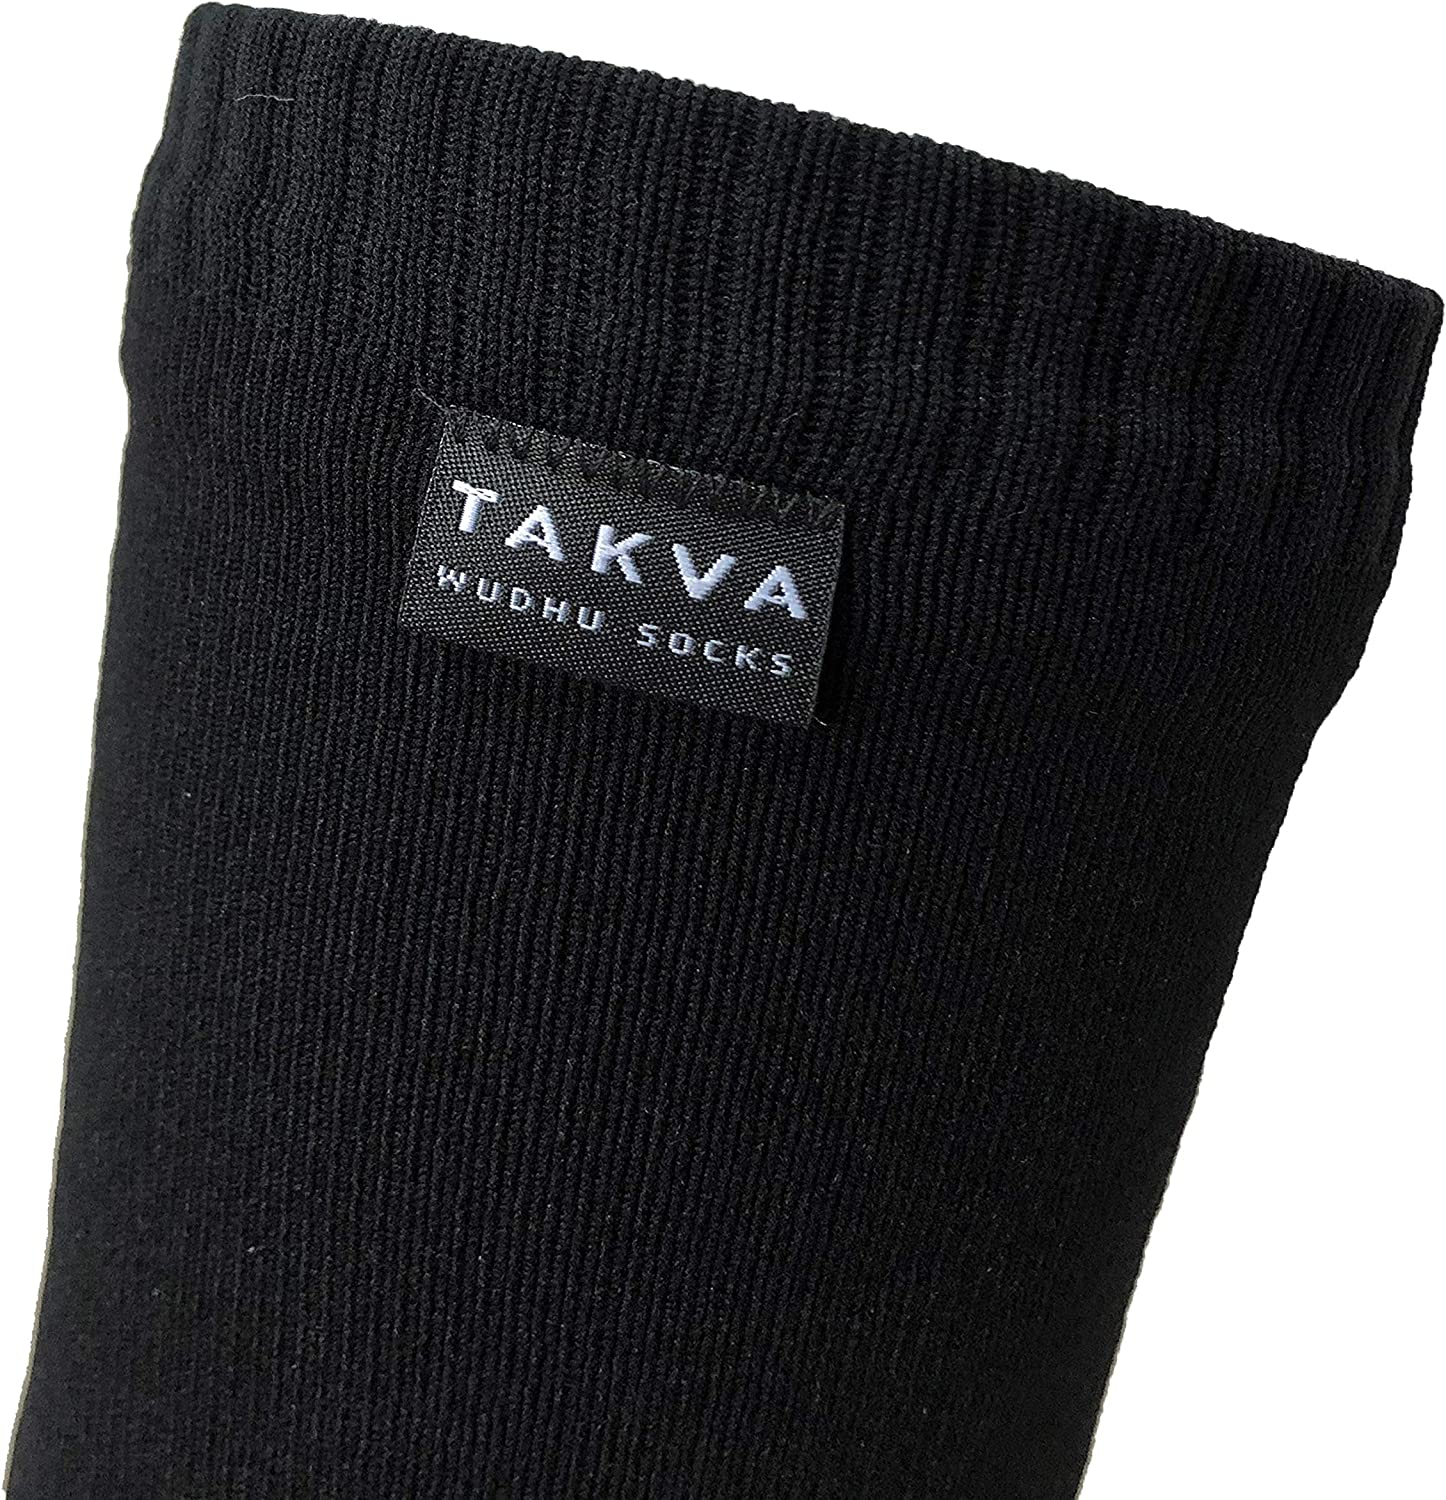 Unisex Waterproof socks Anti-odor Breathable TAKVA Wudhu Socks